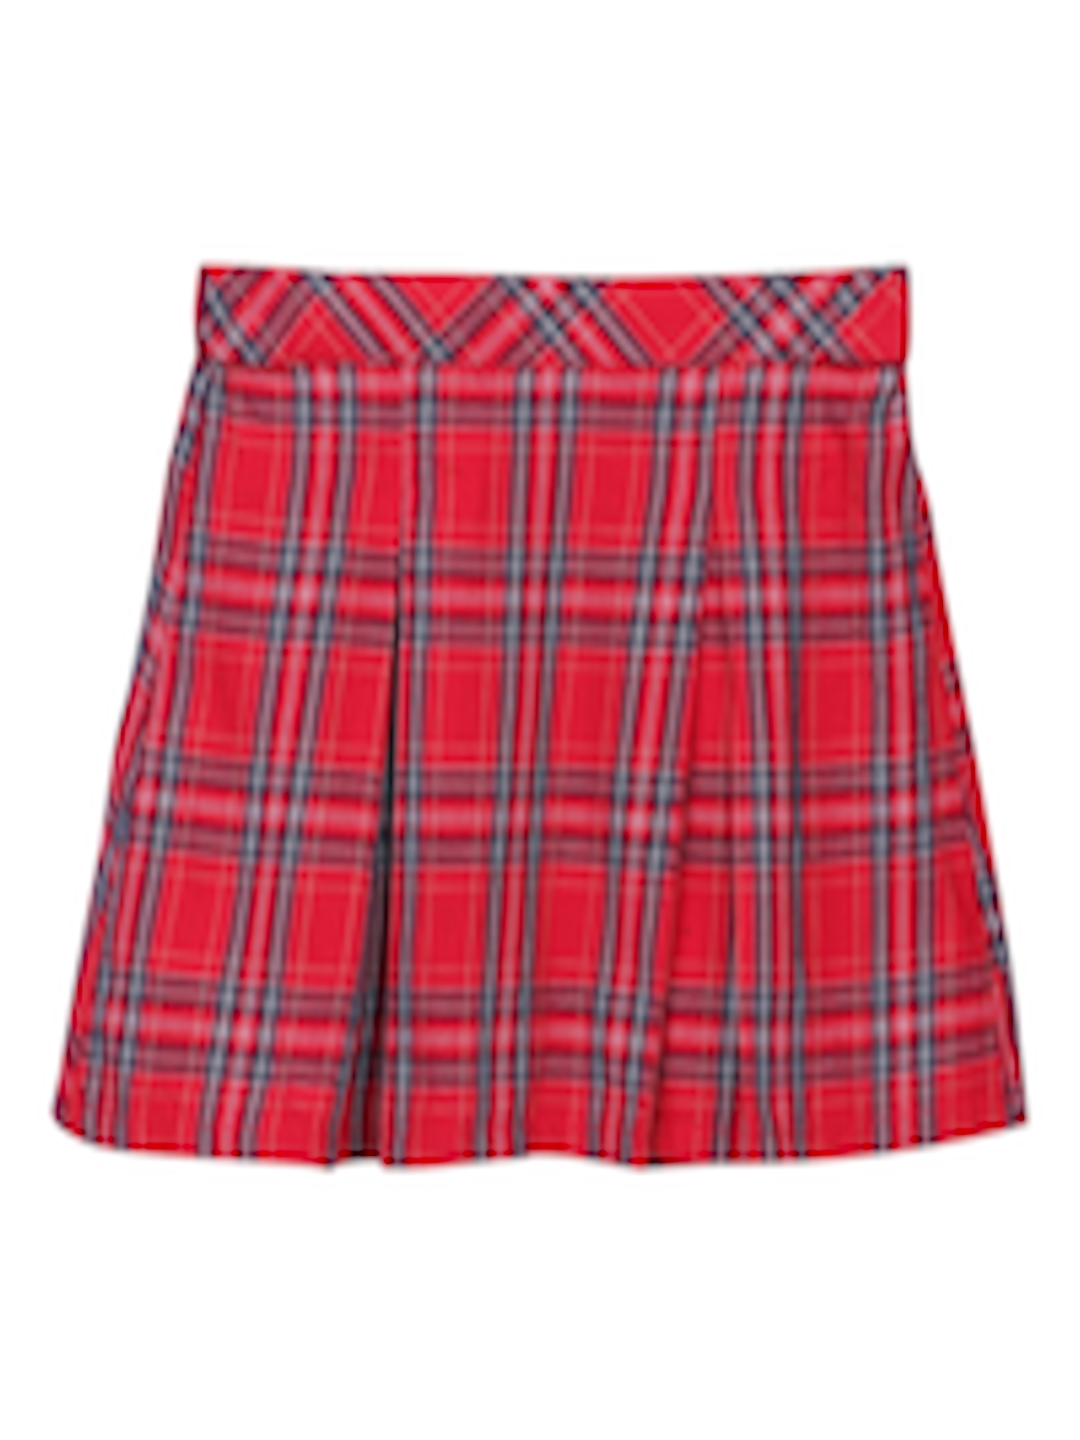 4bd5f97ad8 Buy Beebay Girls Red & Blue Checked Skirt - Skirts for Girls 7028818 |  Myntra